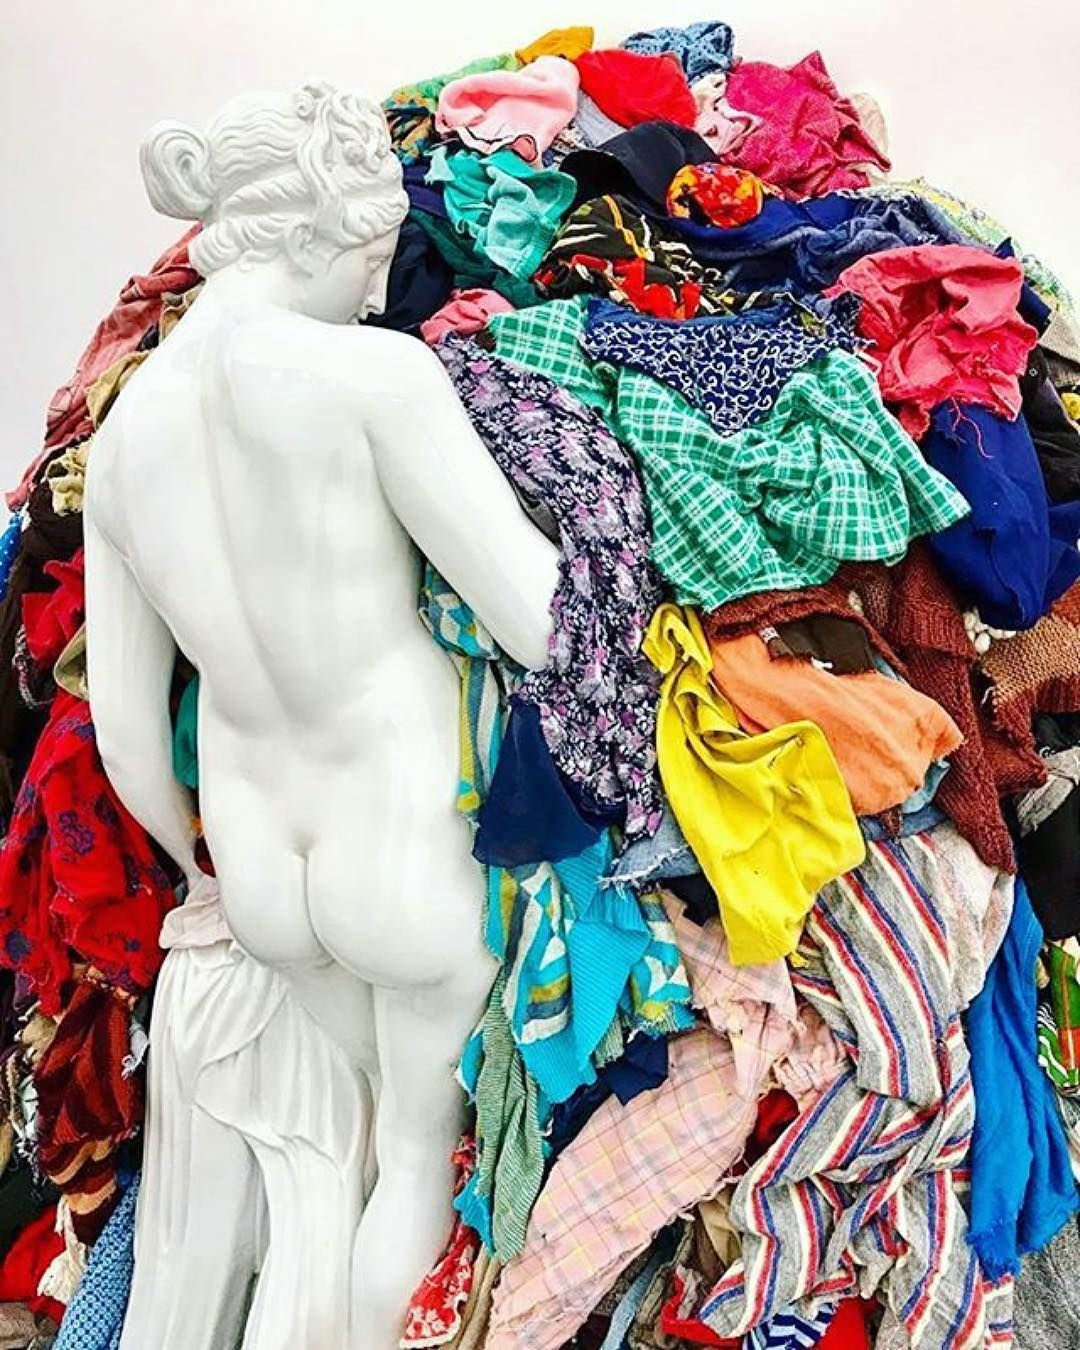 Arte Povera Venus Venus Of The Rags Michelangelo Pistoletto A Leading Figure In The